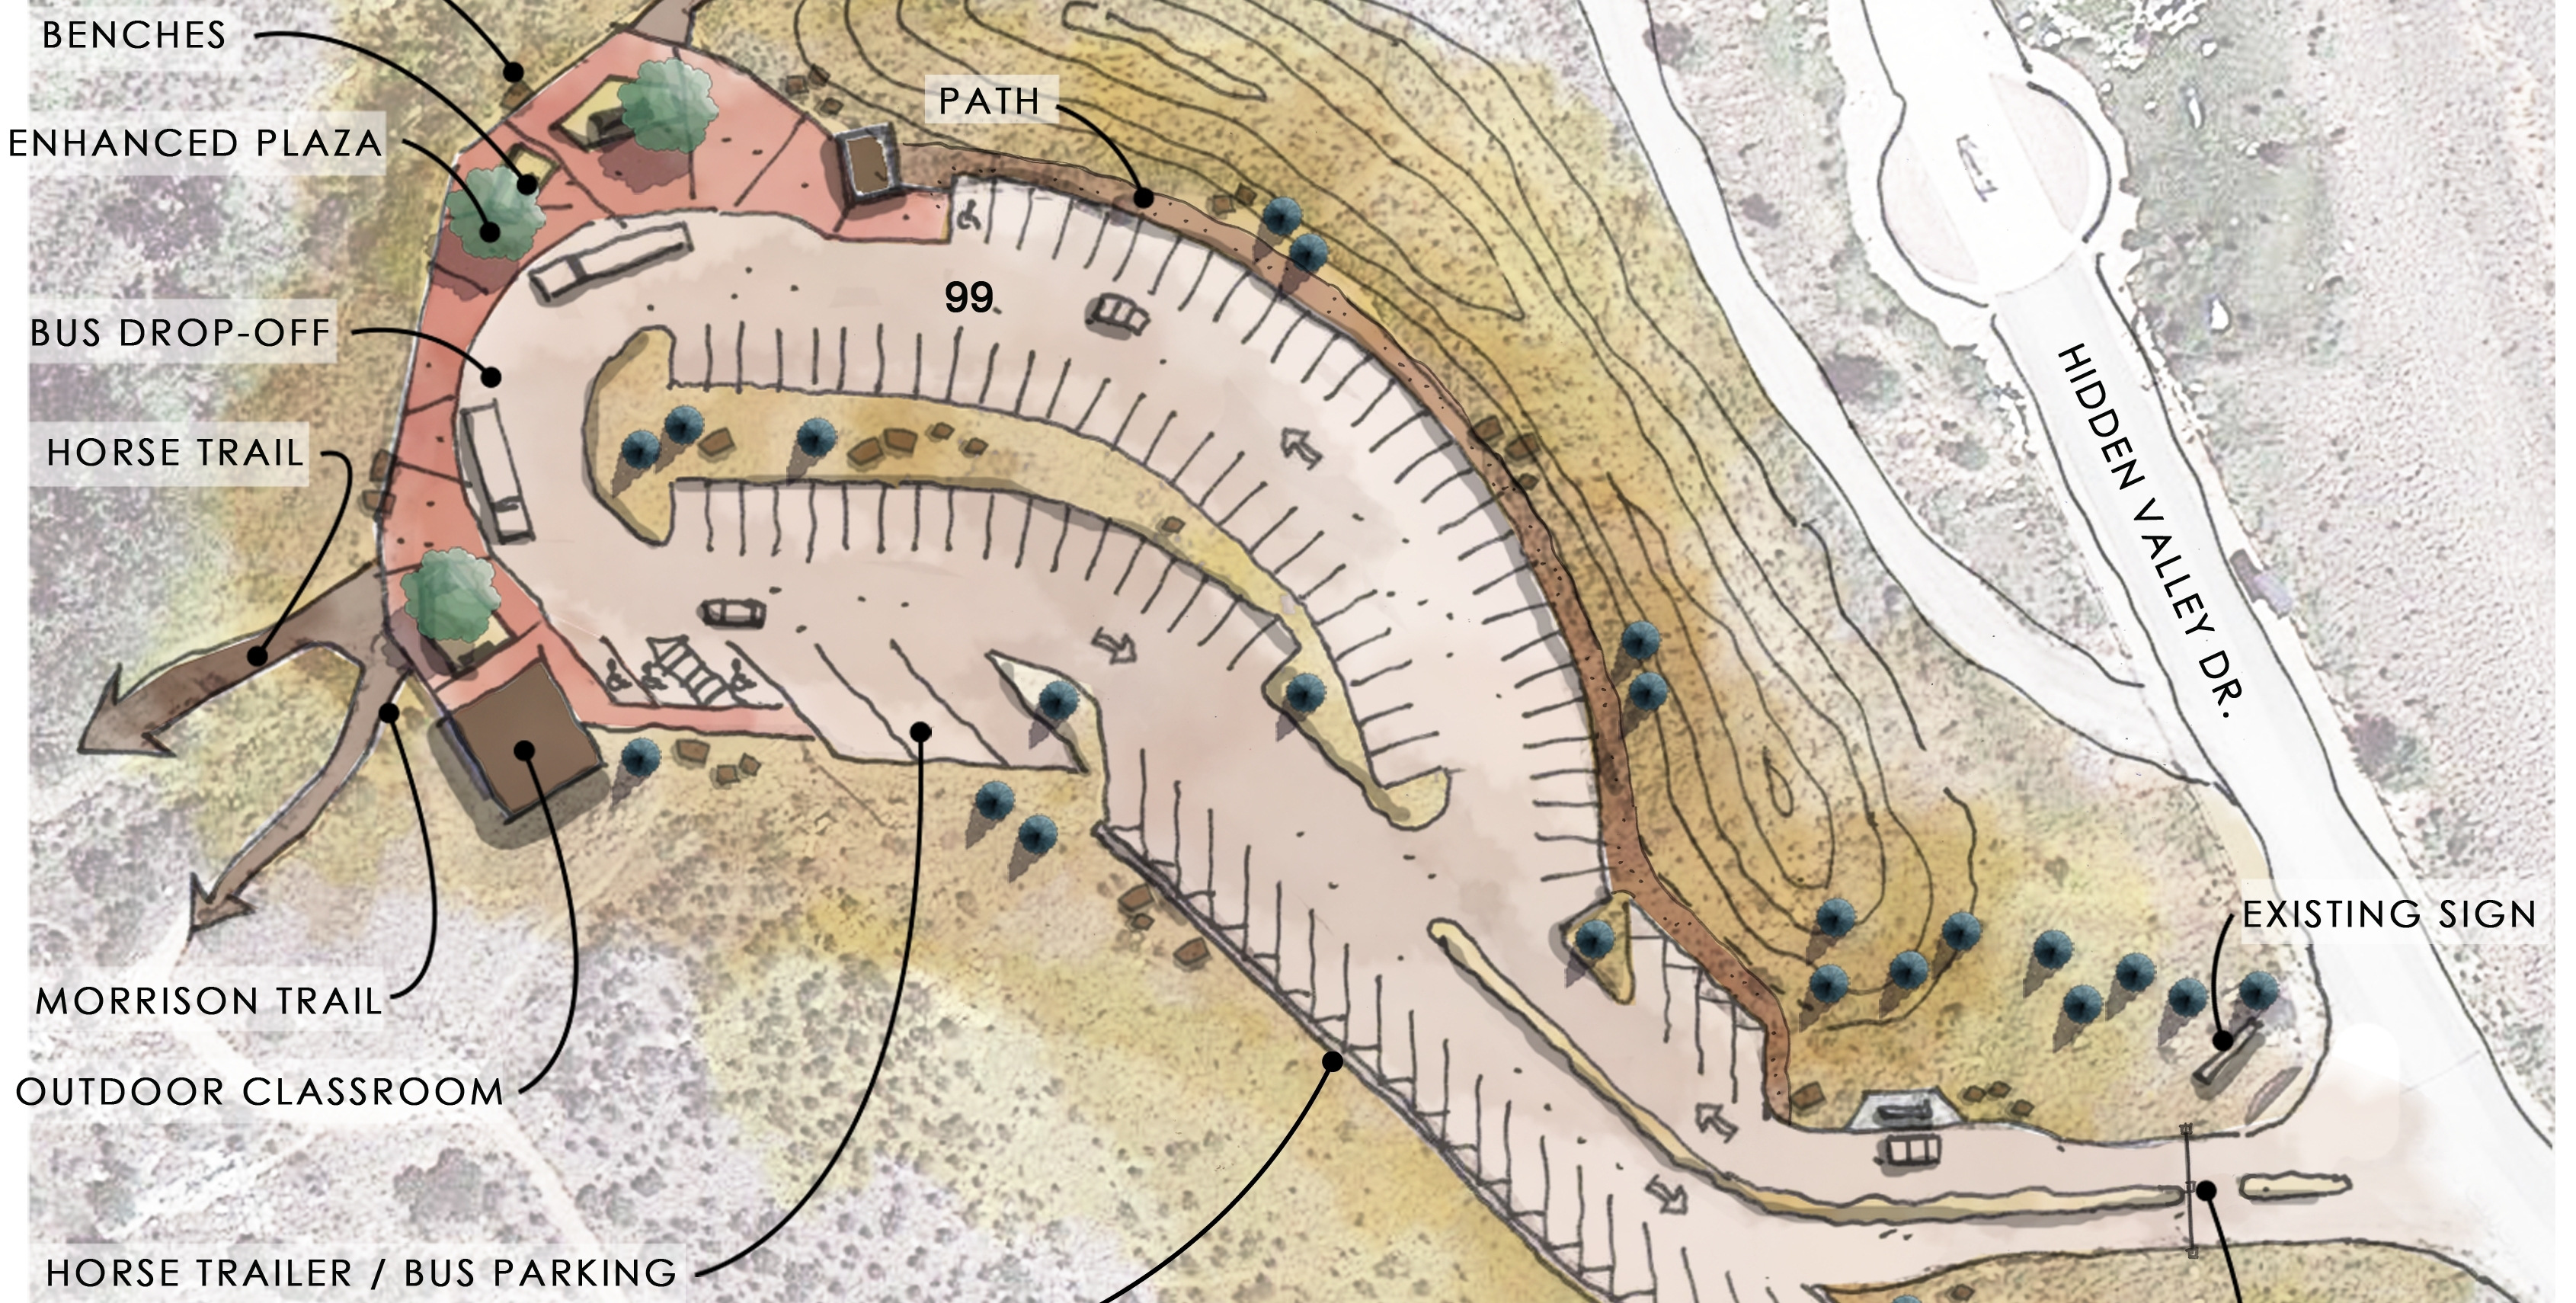 Devil's Backbone Site Plan